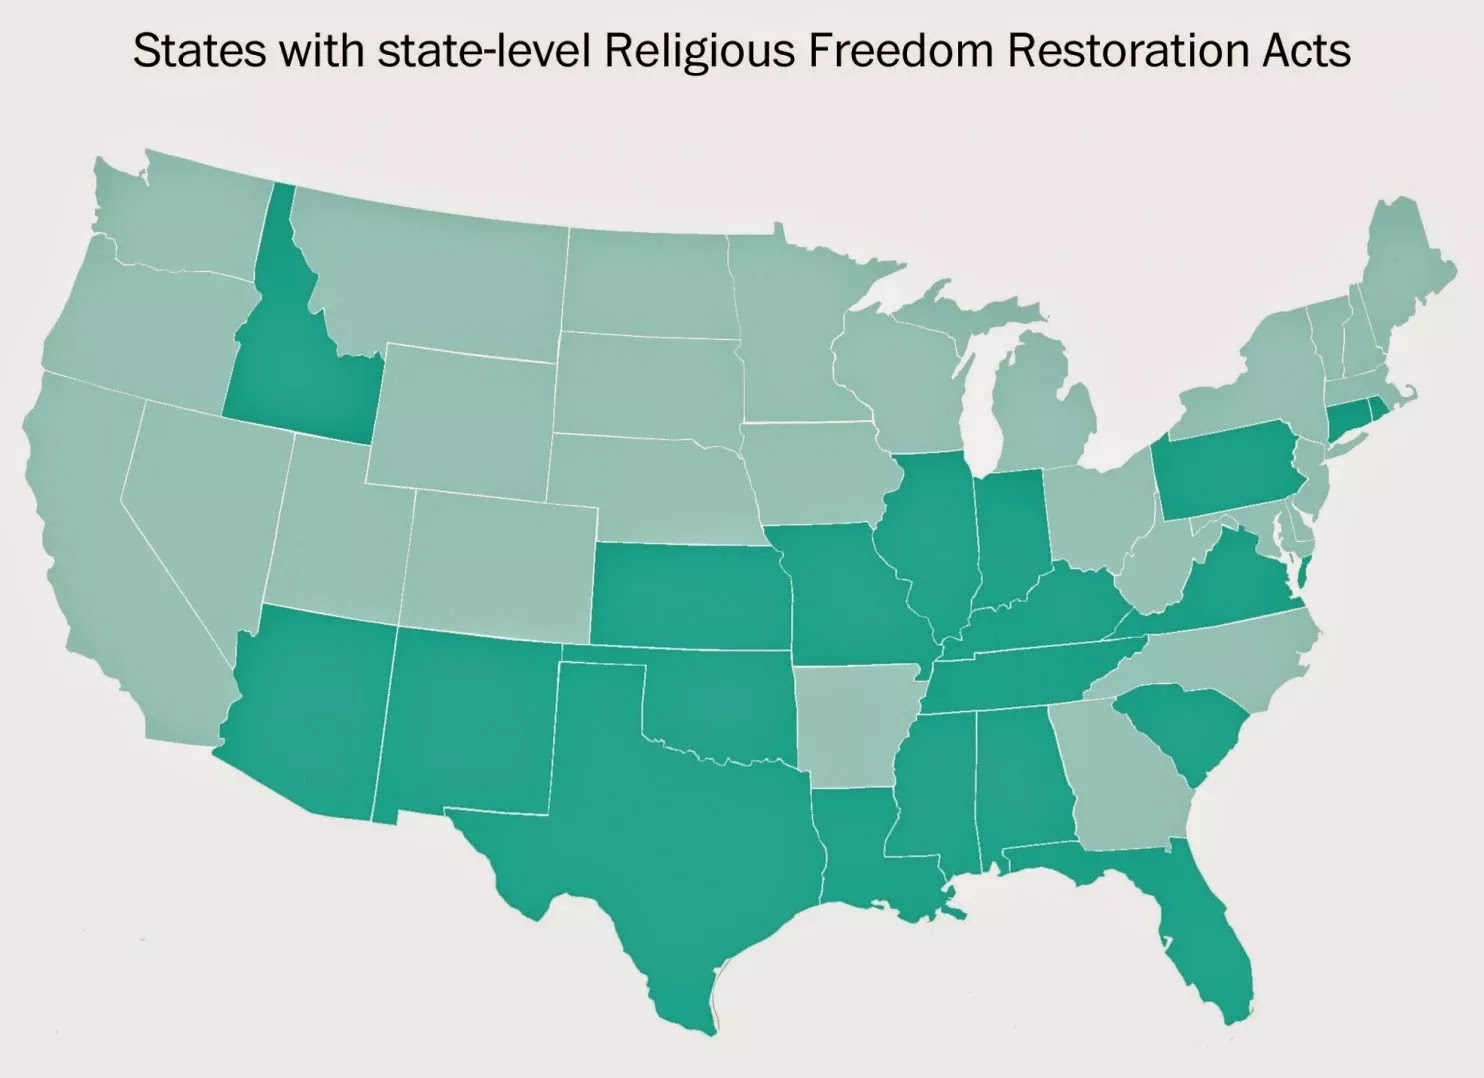 of these religious restoration acts to be implemented in the united states as a matter of fact it is the 21st state to pass some form of the bill